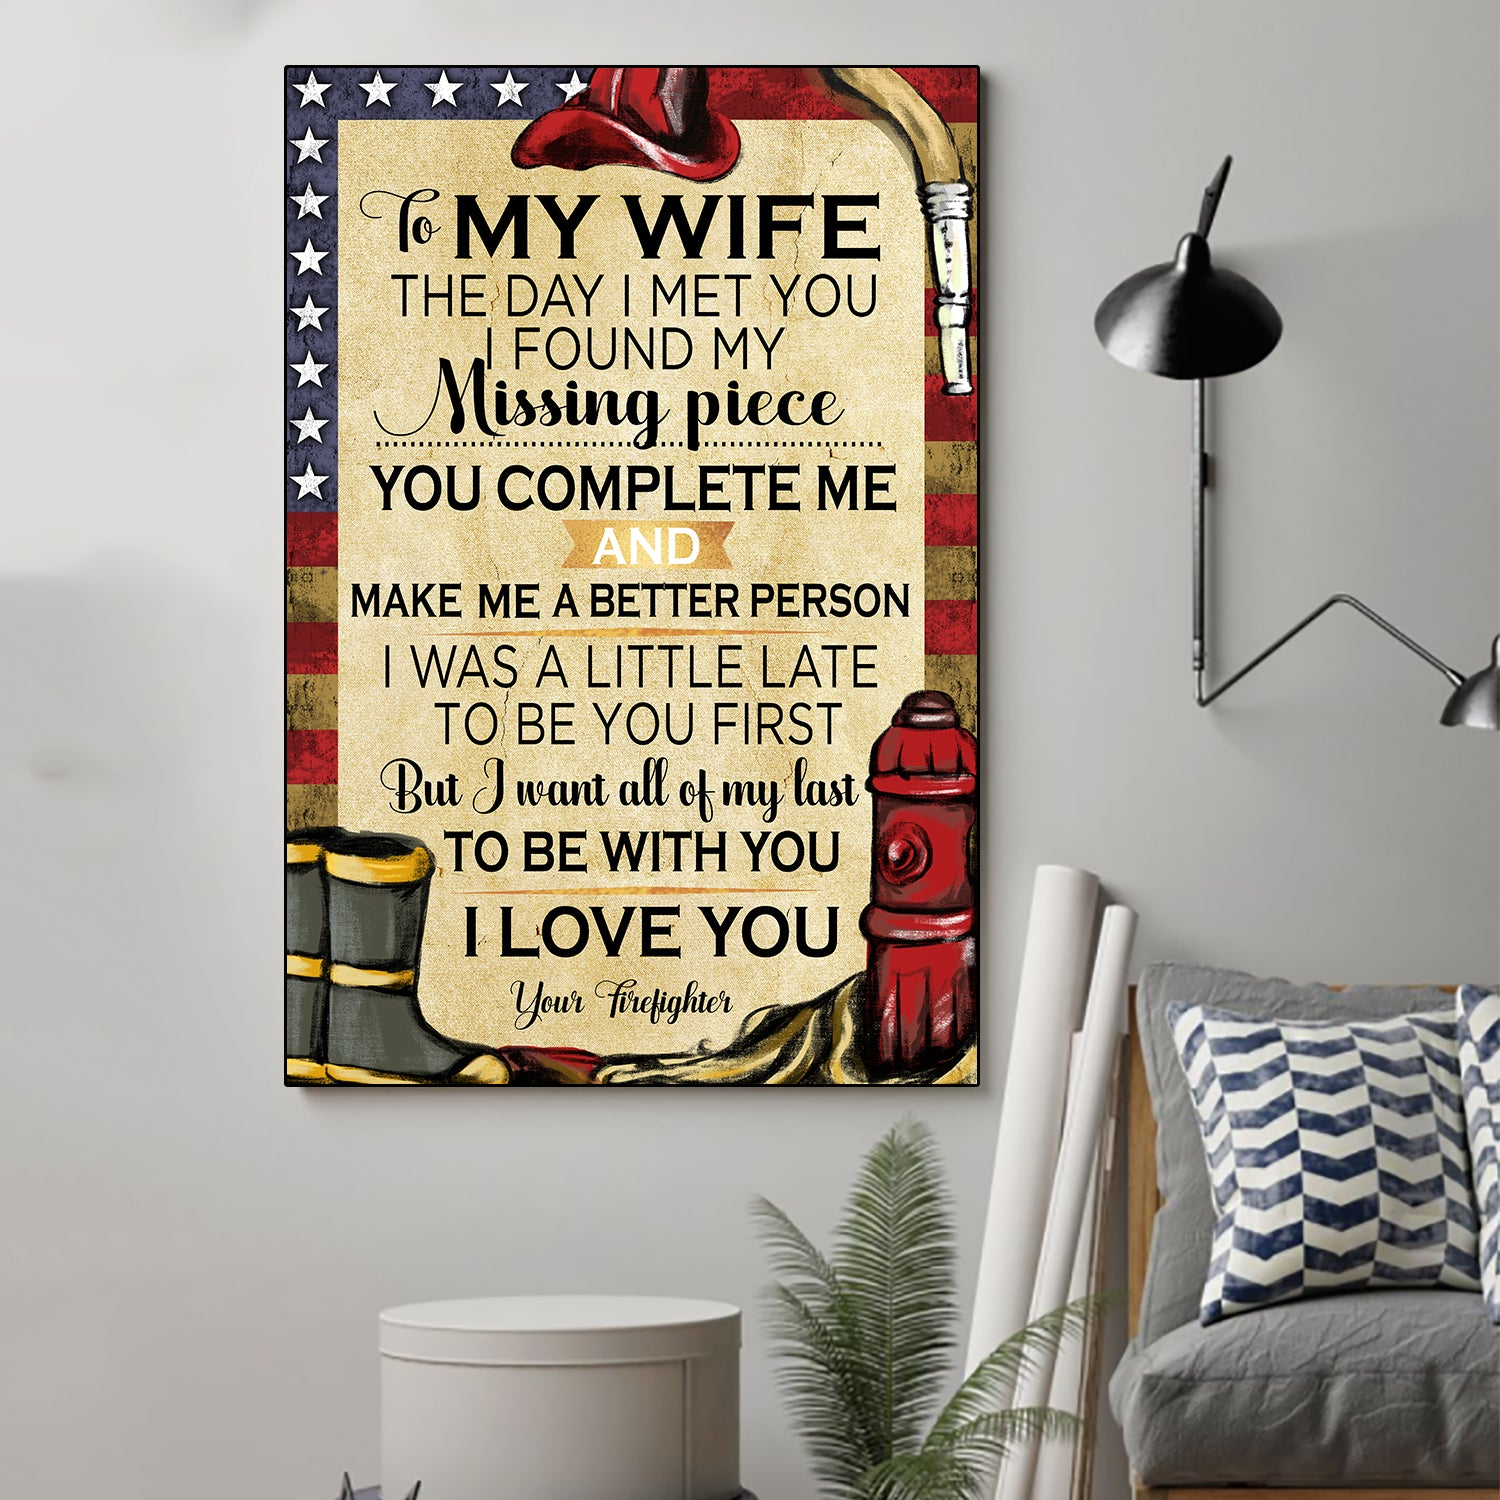 (cv330) Firefighter Poster - To my wife. Today I met you